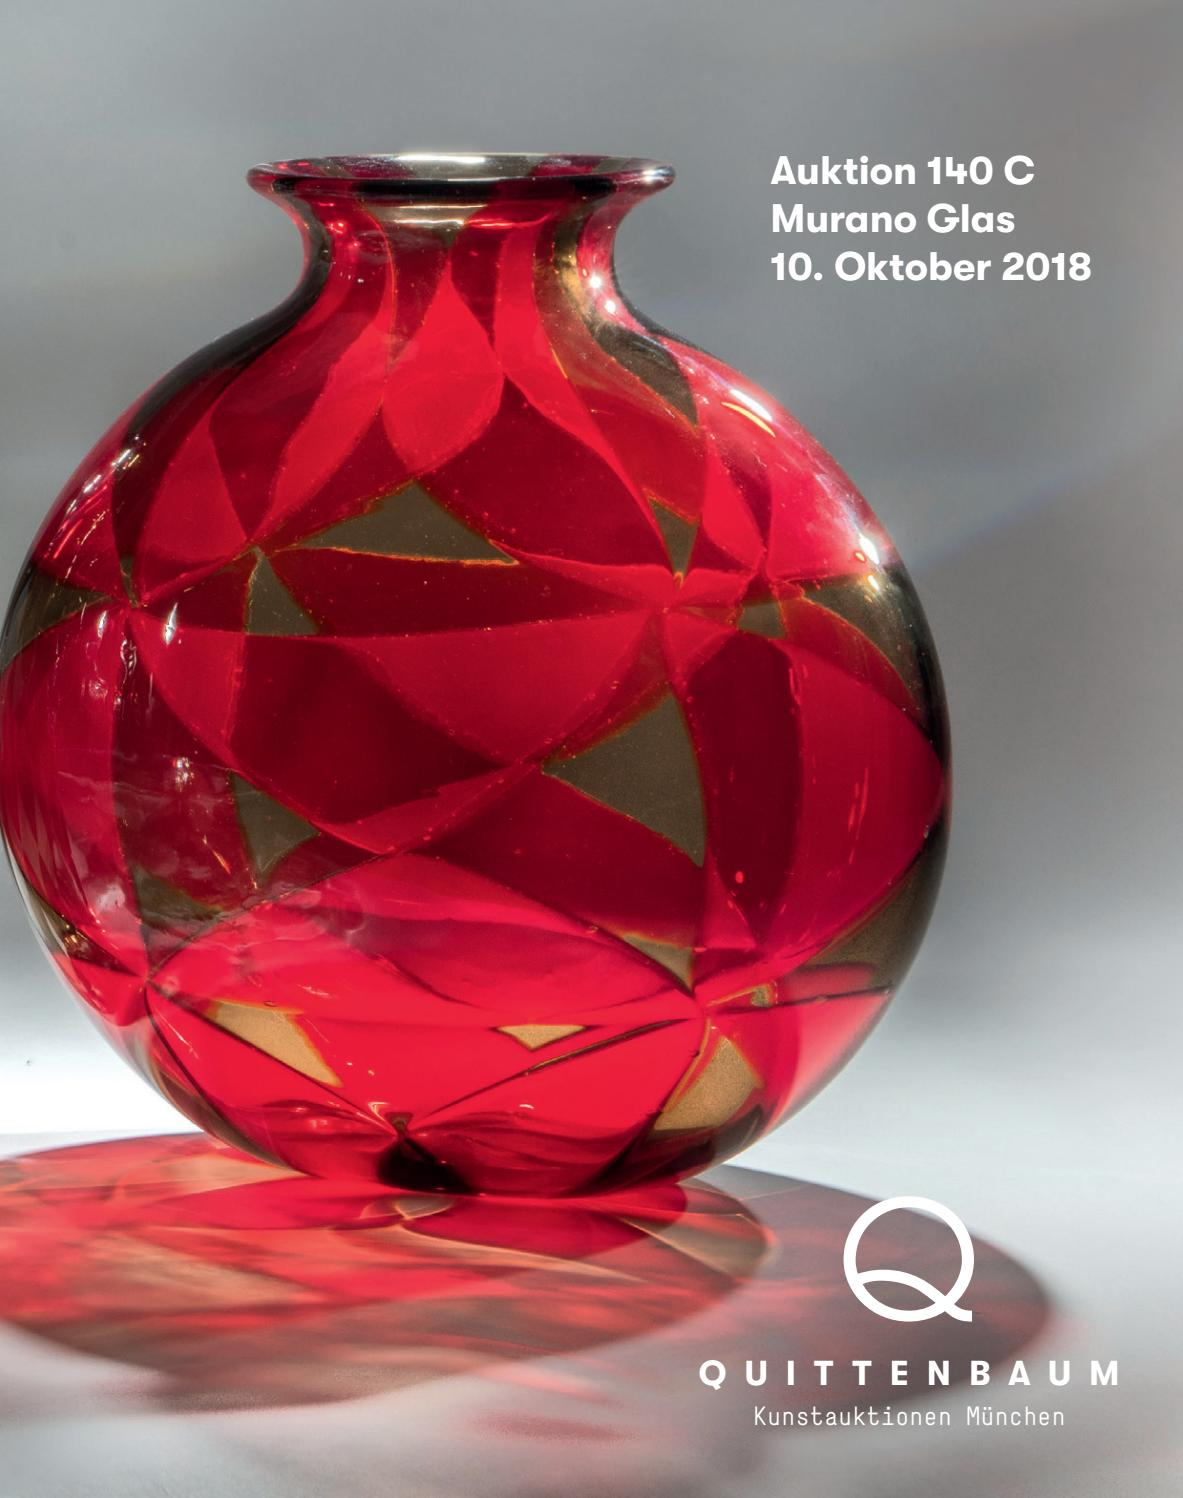 Auction 140 C Murano Glass Quittenbaum Art Auctions By